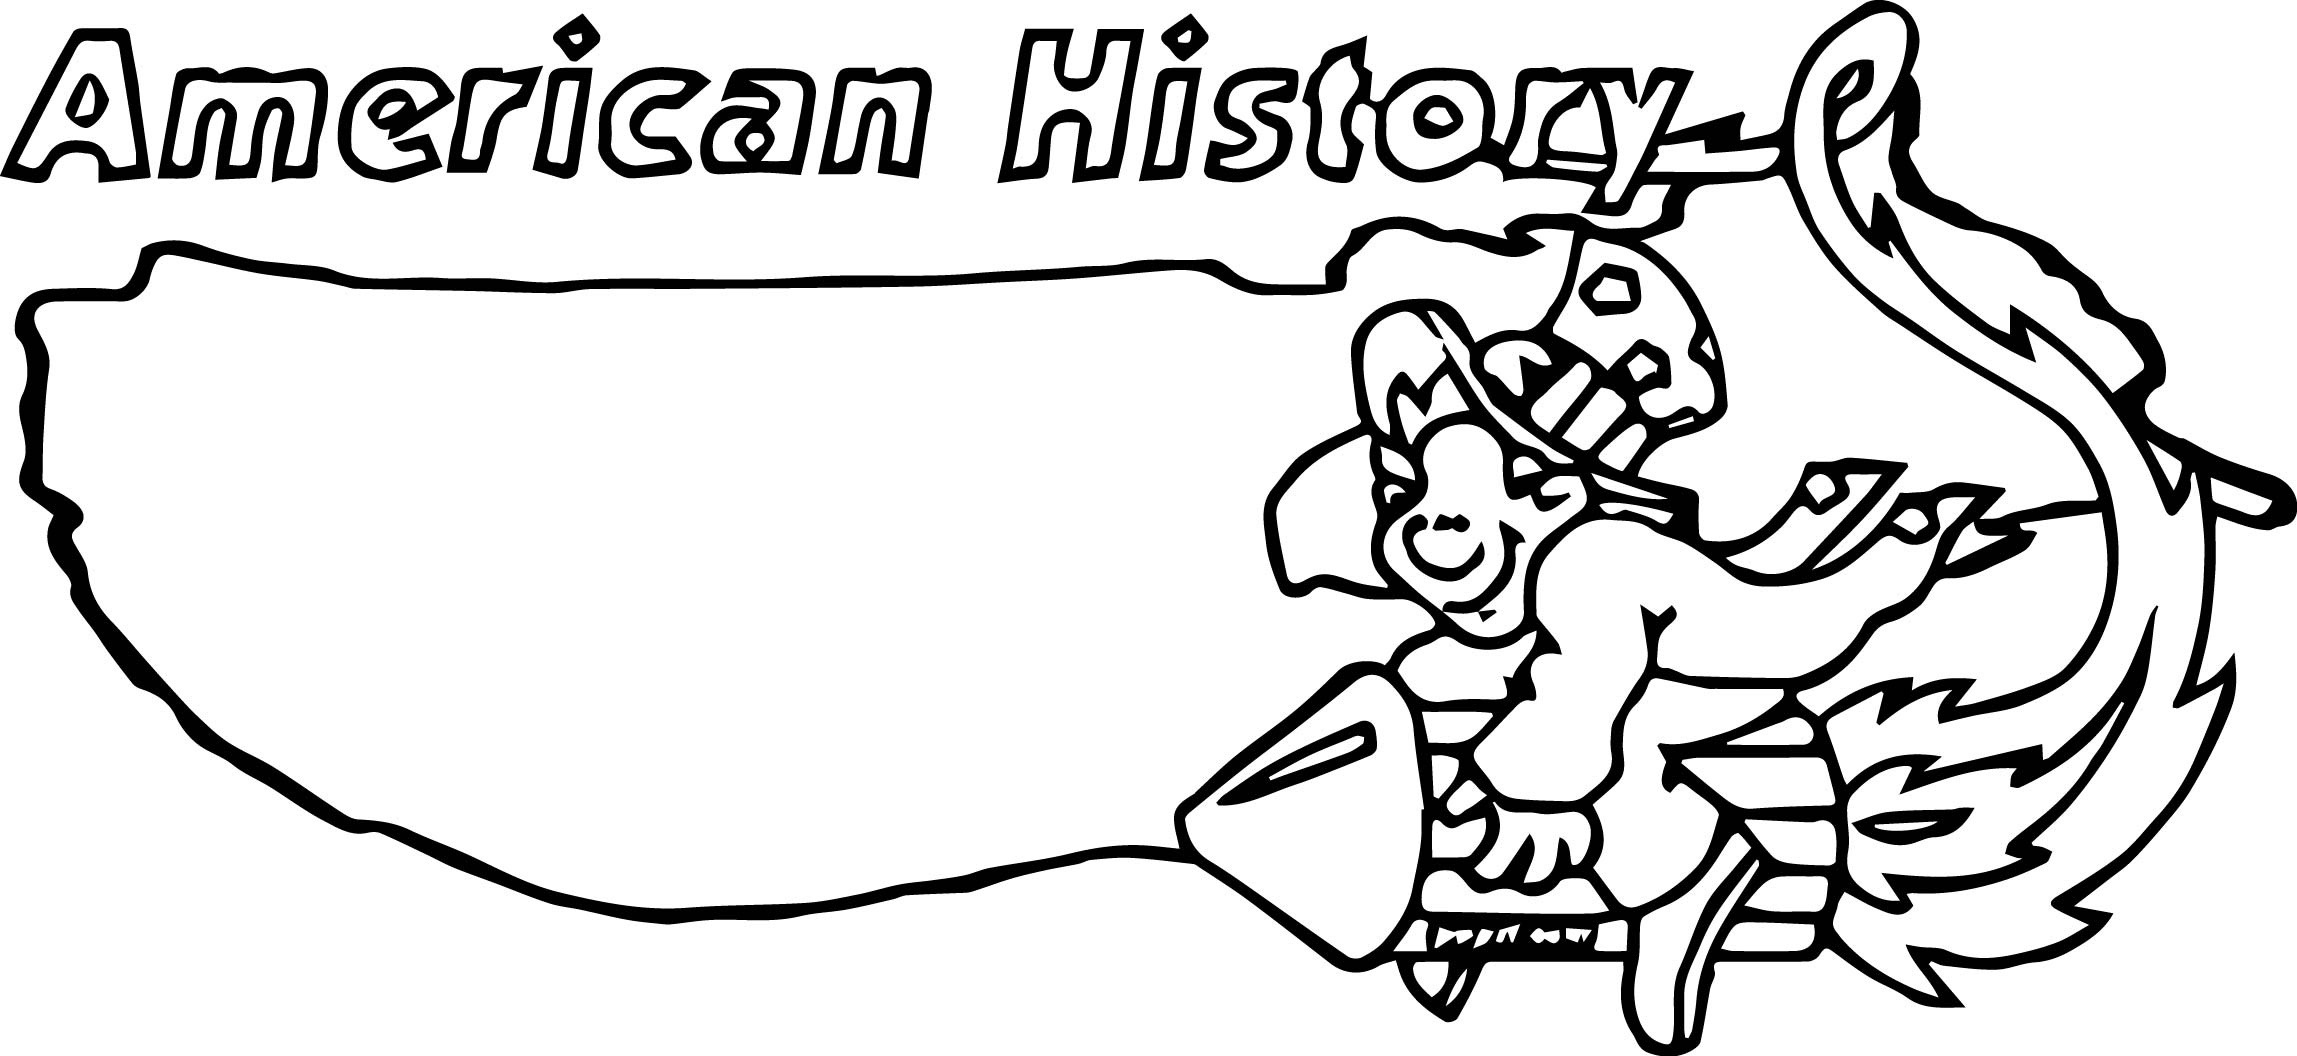 American Revolution Banner American History Coloring Page